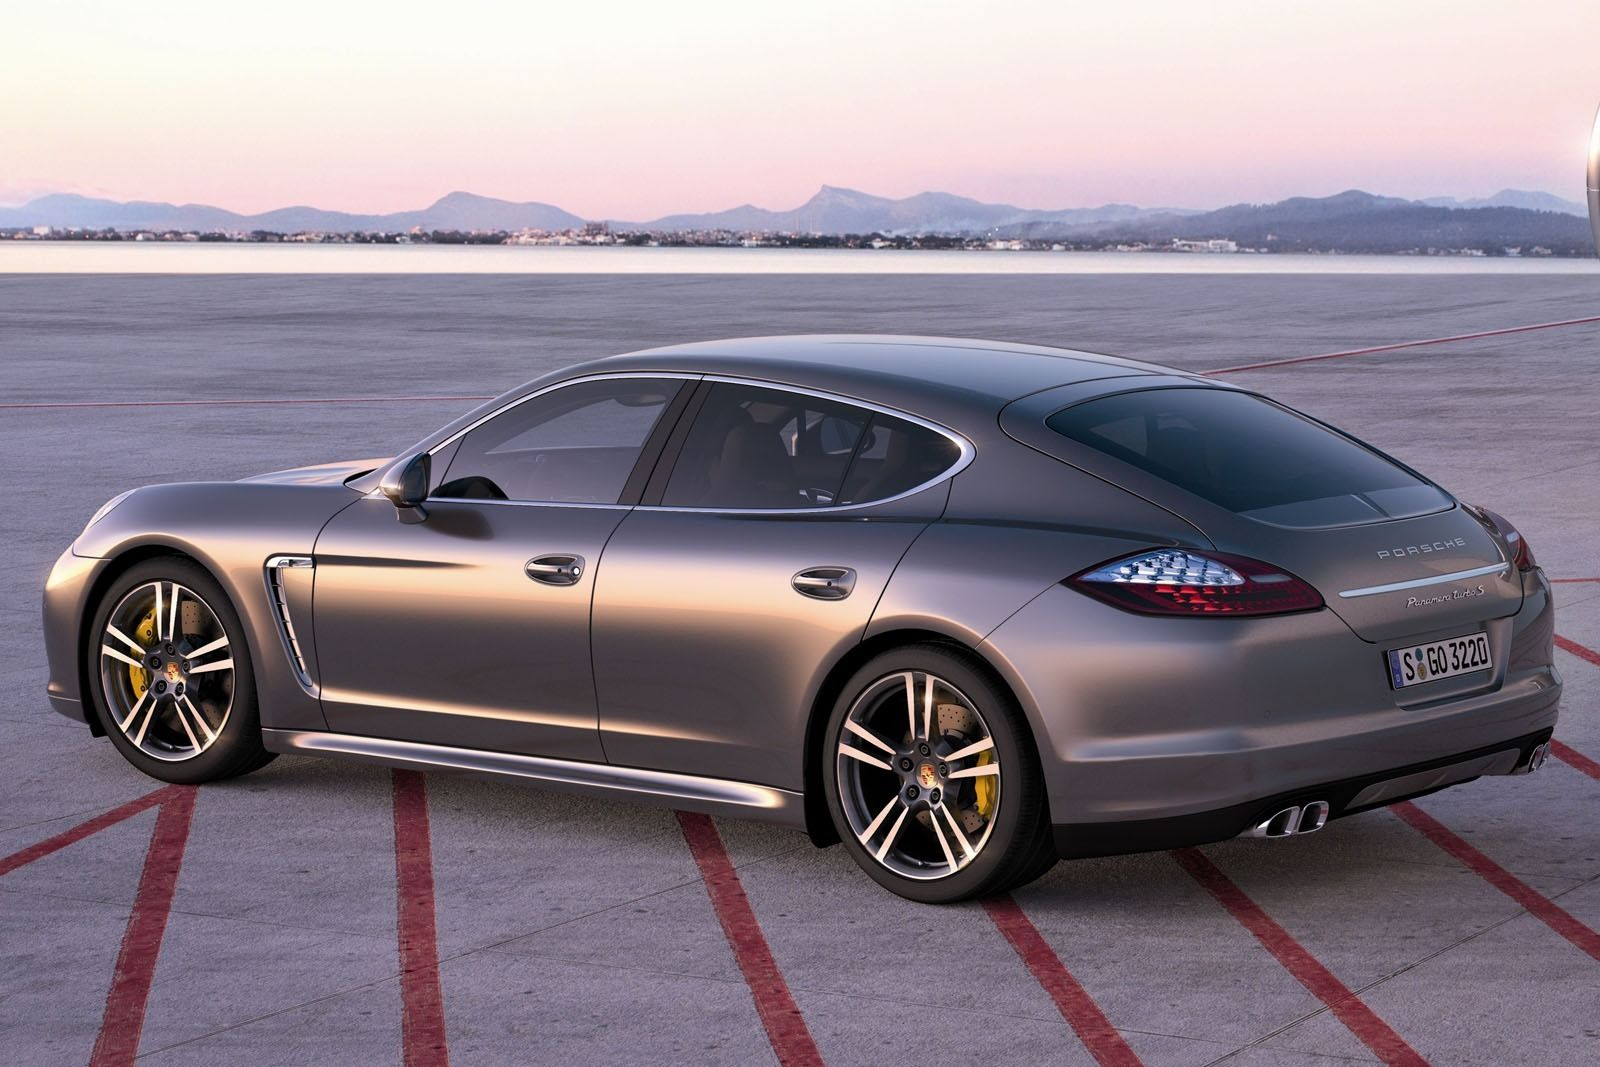 2013 porsche panamera price 15 free hd car wallpaper. Black Bedroom Furniture Sets. Home Design Ideas